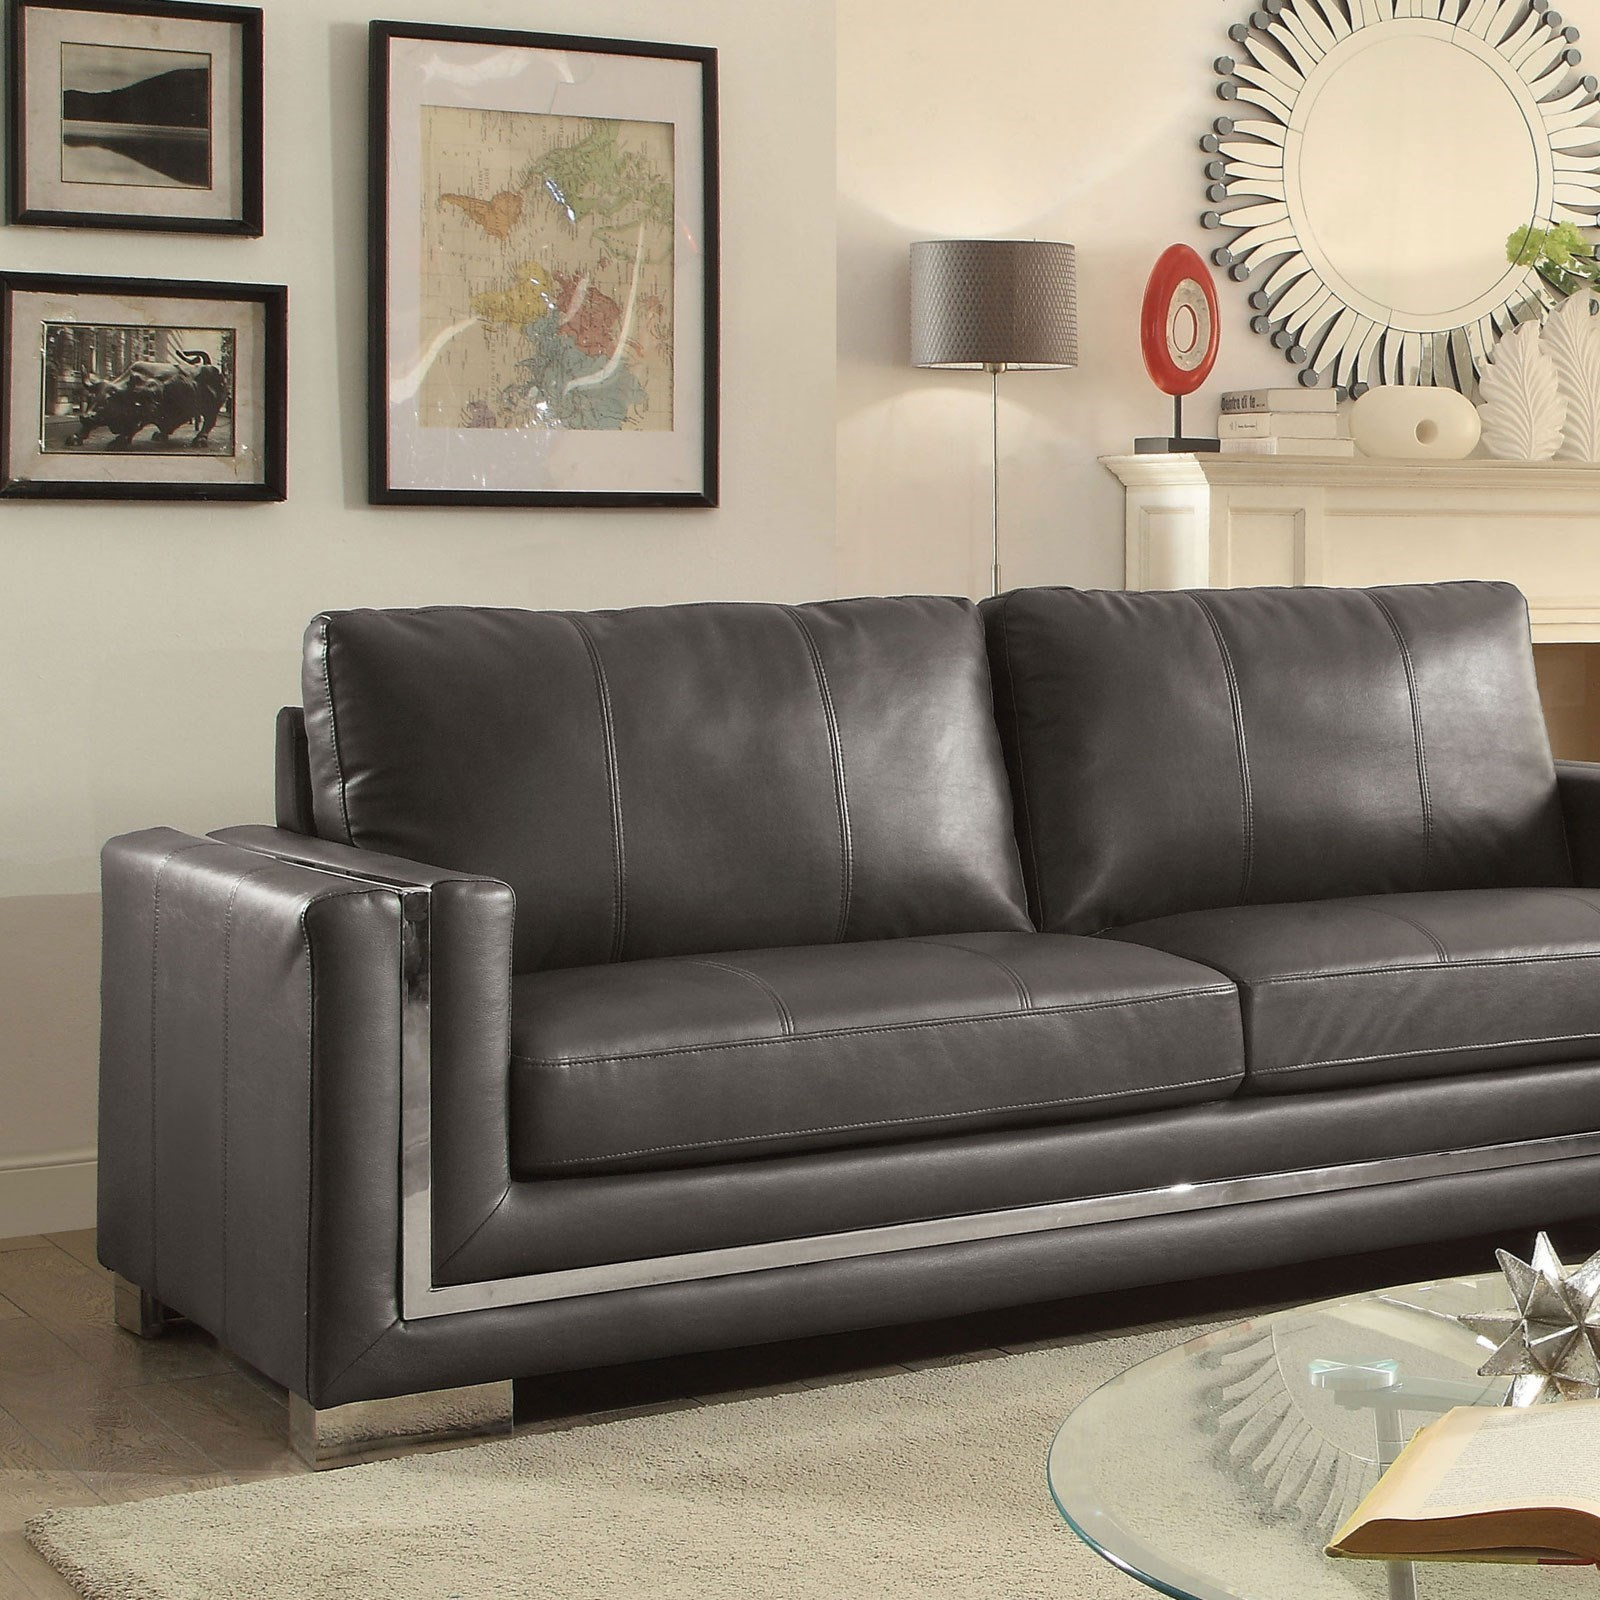 Contemporary Couch Perla Contemporary Sofa With Stainless Steel Trim By Furniture Of America At Rooms For Less